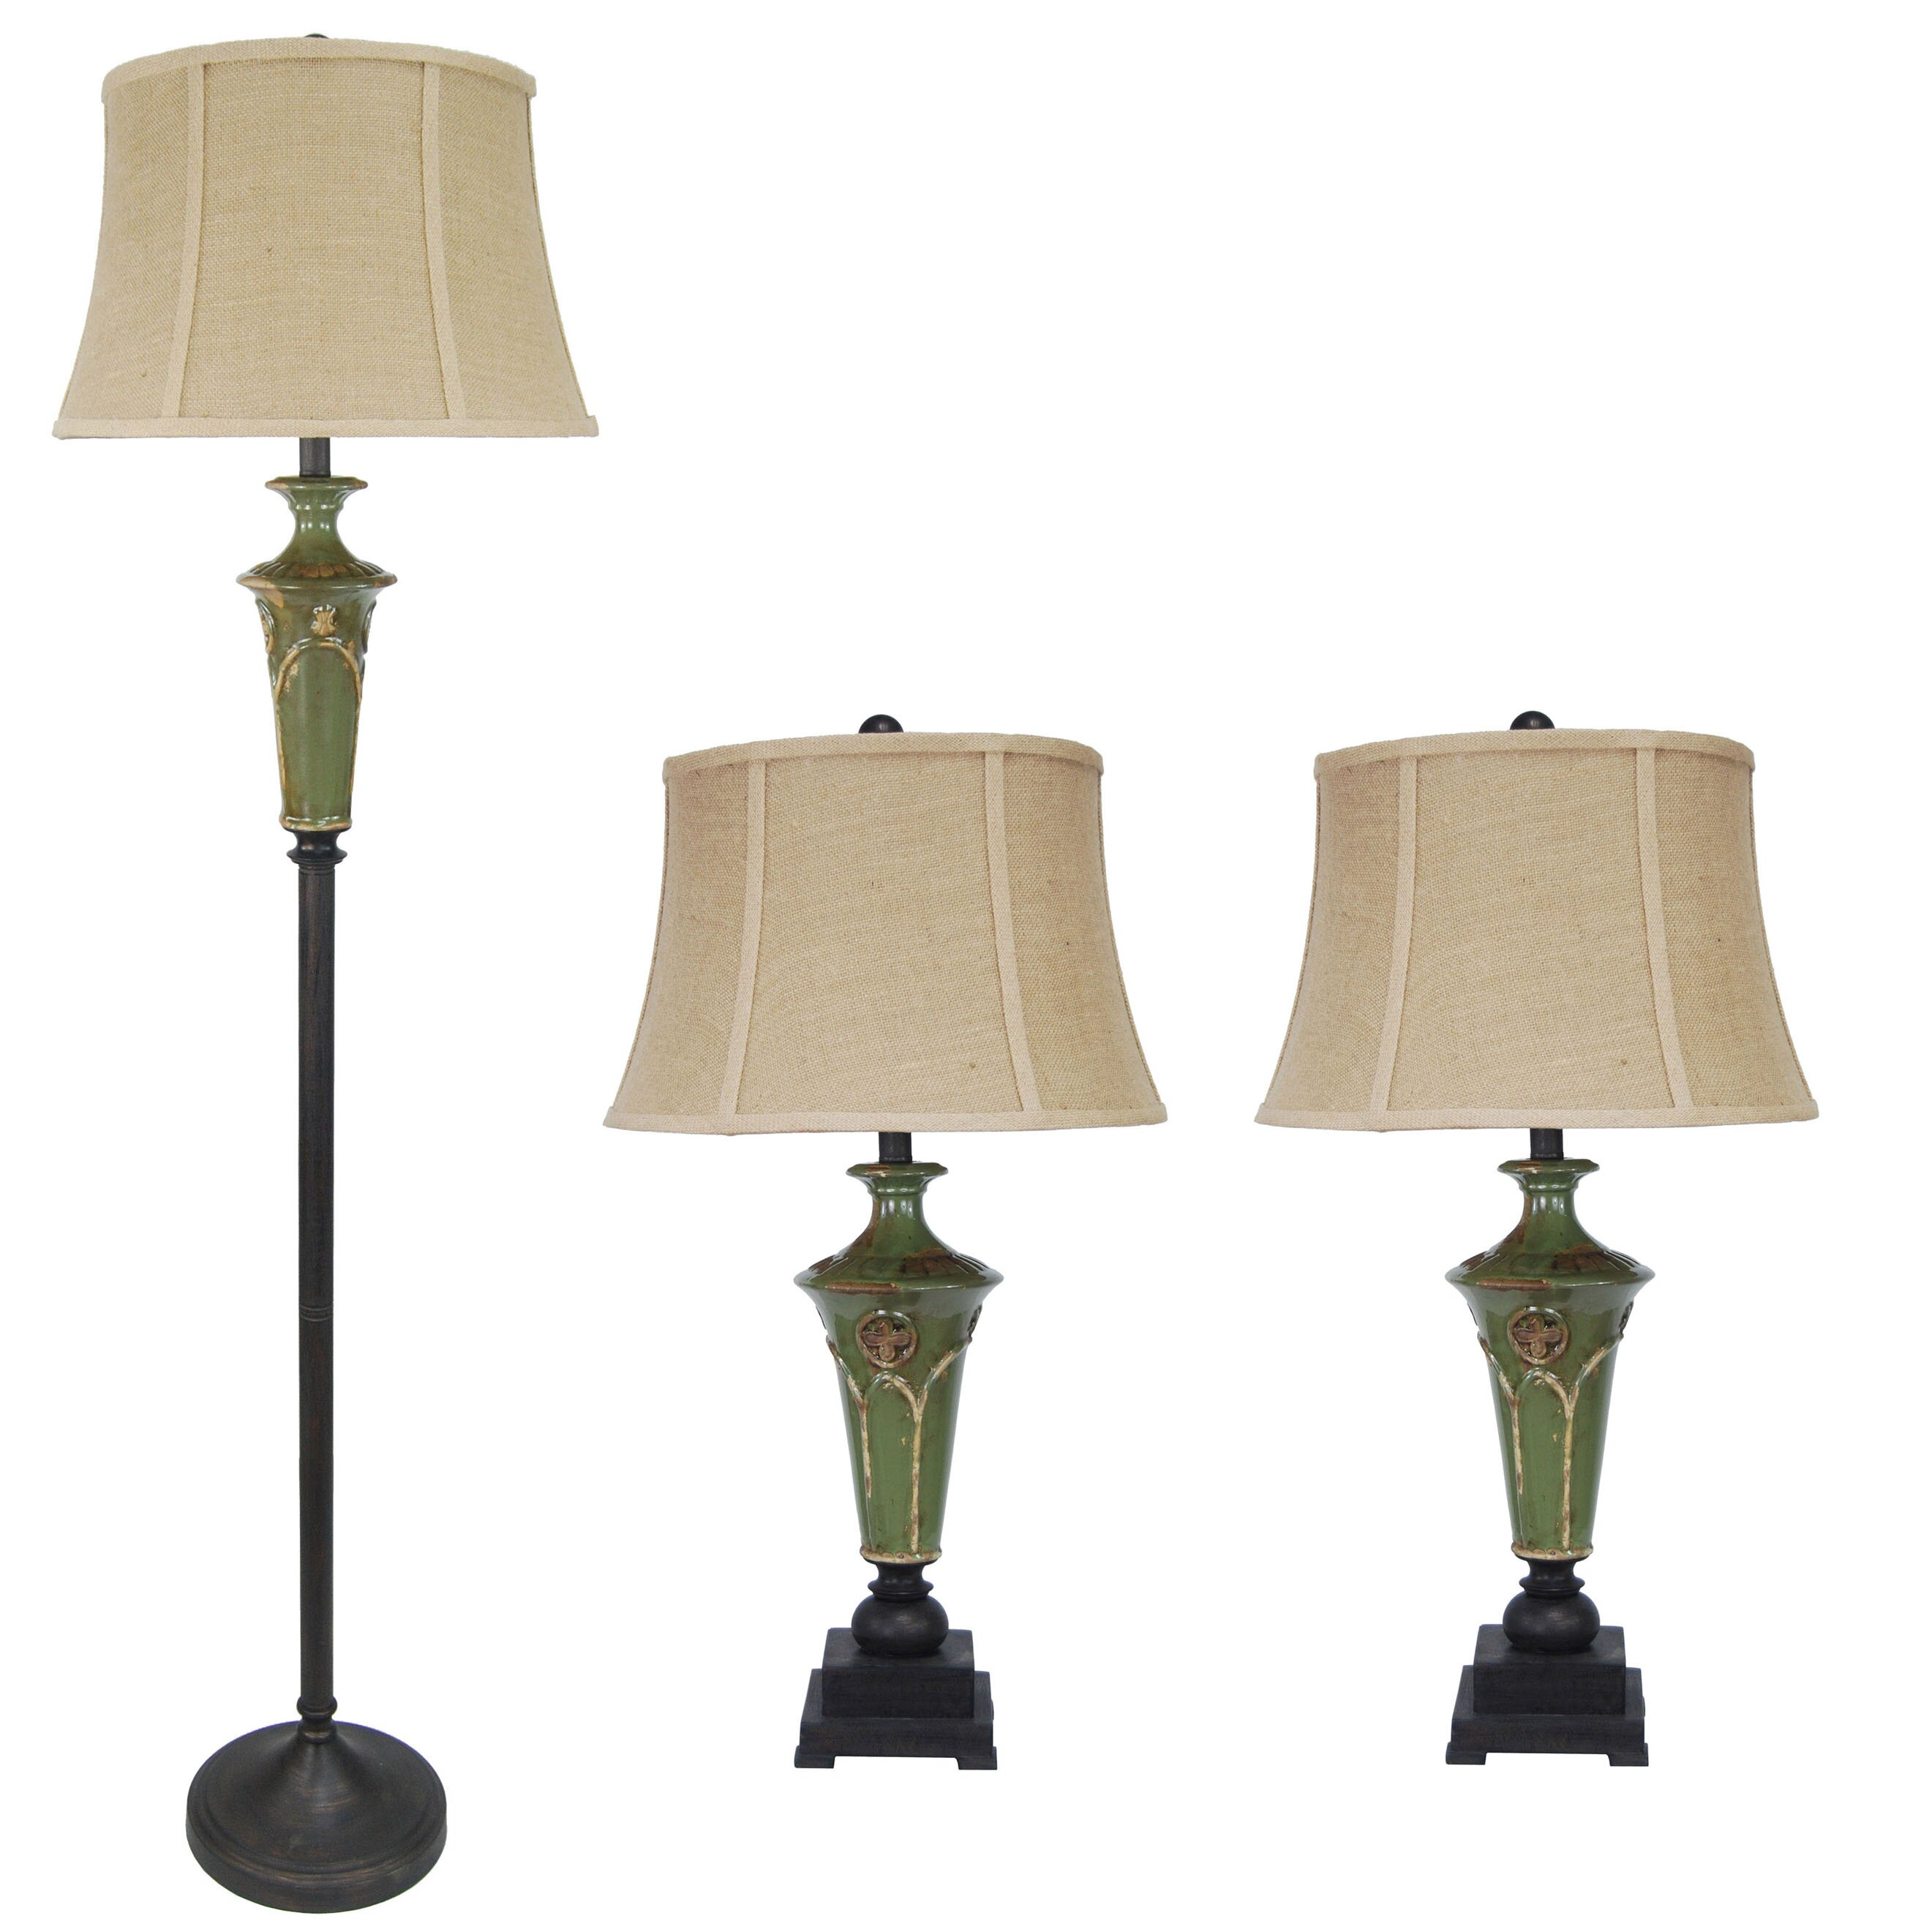 Lowes Brushed Nickel Table Lamps Allen Roth Woodbine 60